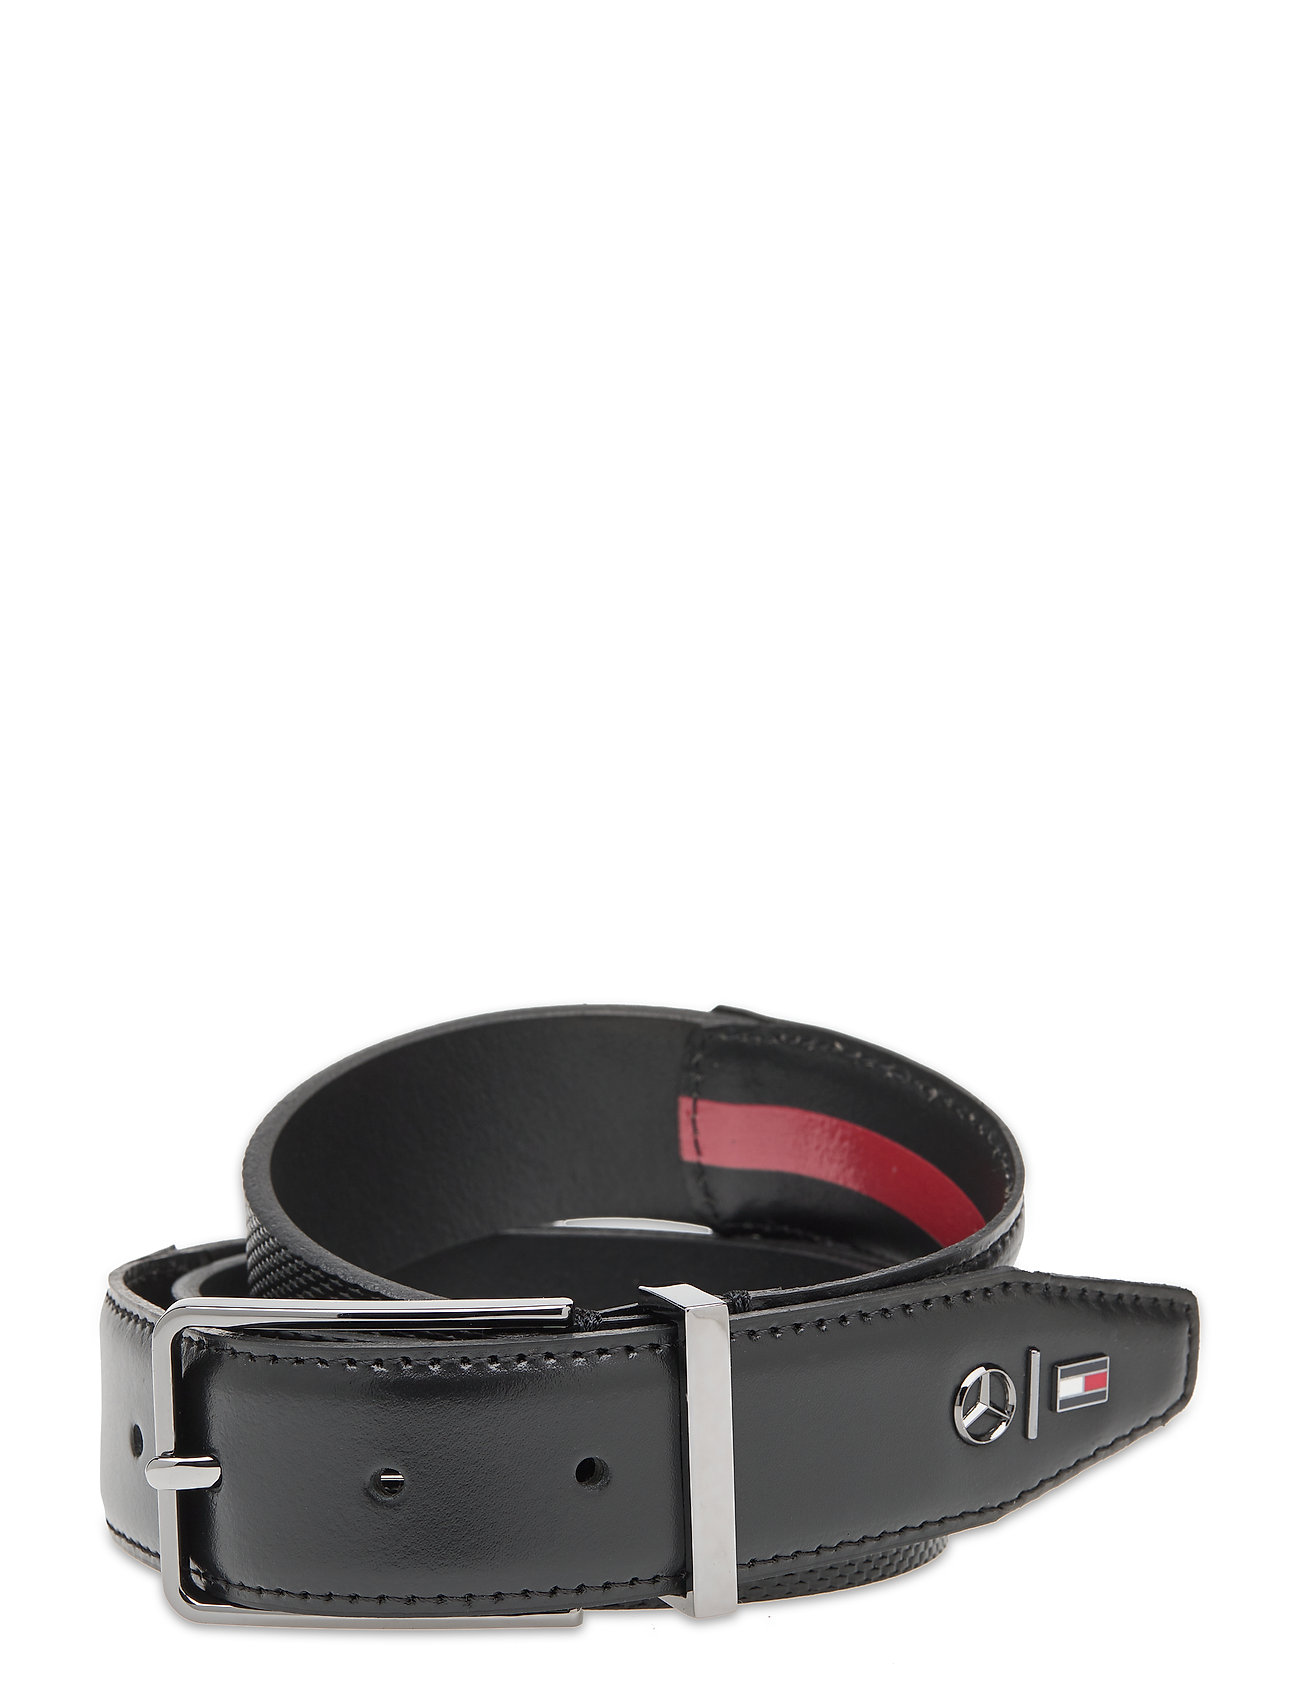 Image of 2mb Textured Belt Accessories Belts Classic Belts Sort Tommy Hilfiger (3453134783)